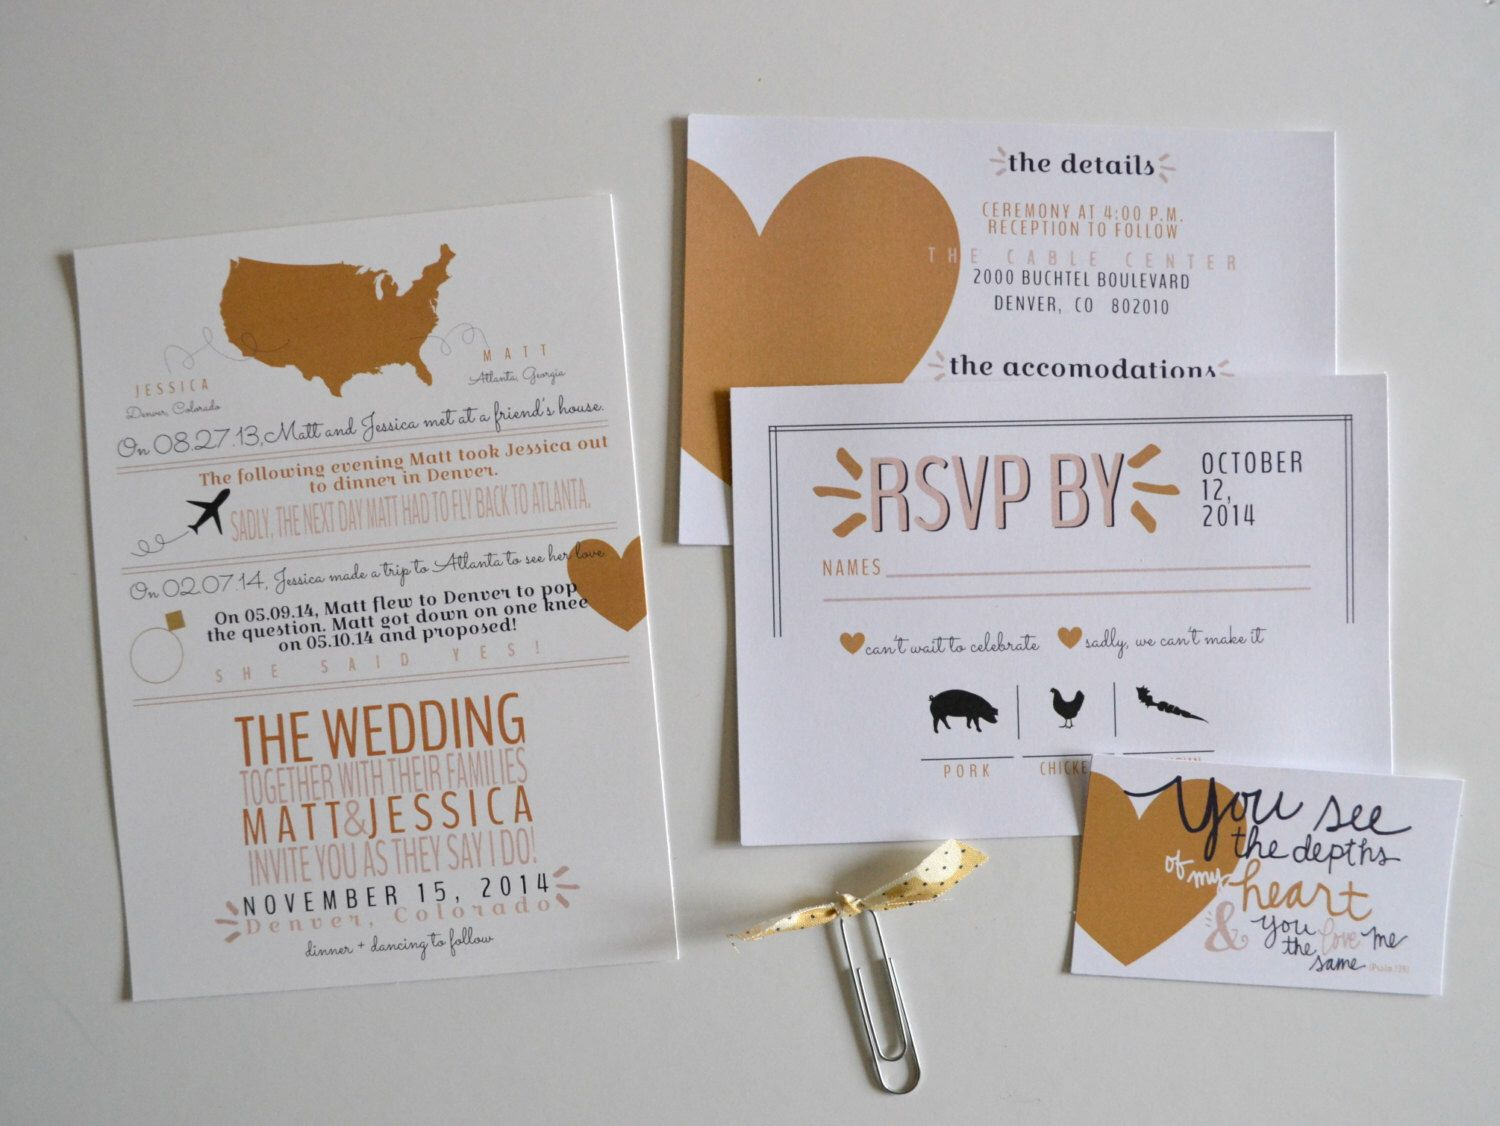 Design Files: Love Story Wedding Invites - Wedding Invites - Love Story - Fall Wedding Invites - Winter Weddings by givewithjoy on Etsy https://www.etsy.com/listing/199972619/design-files-love-story-wedding-invites